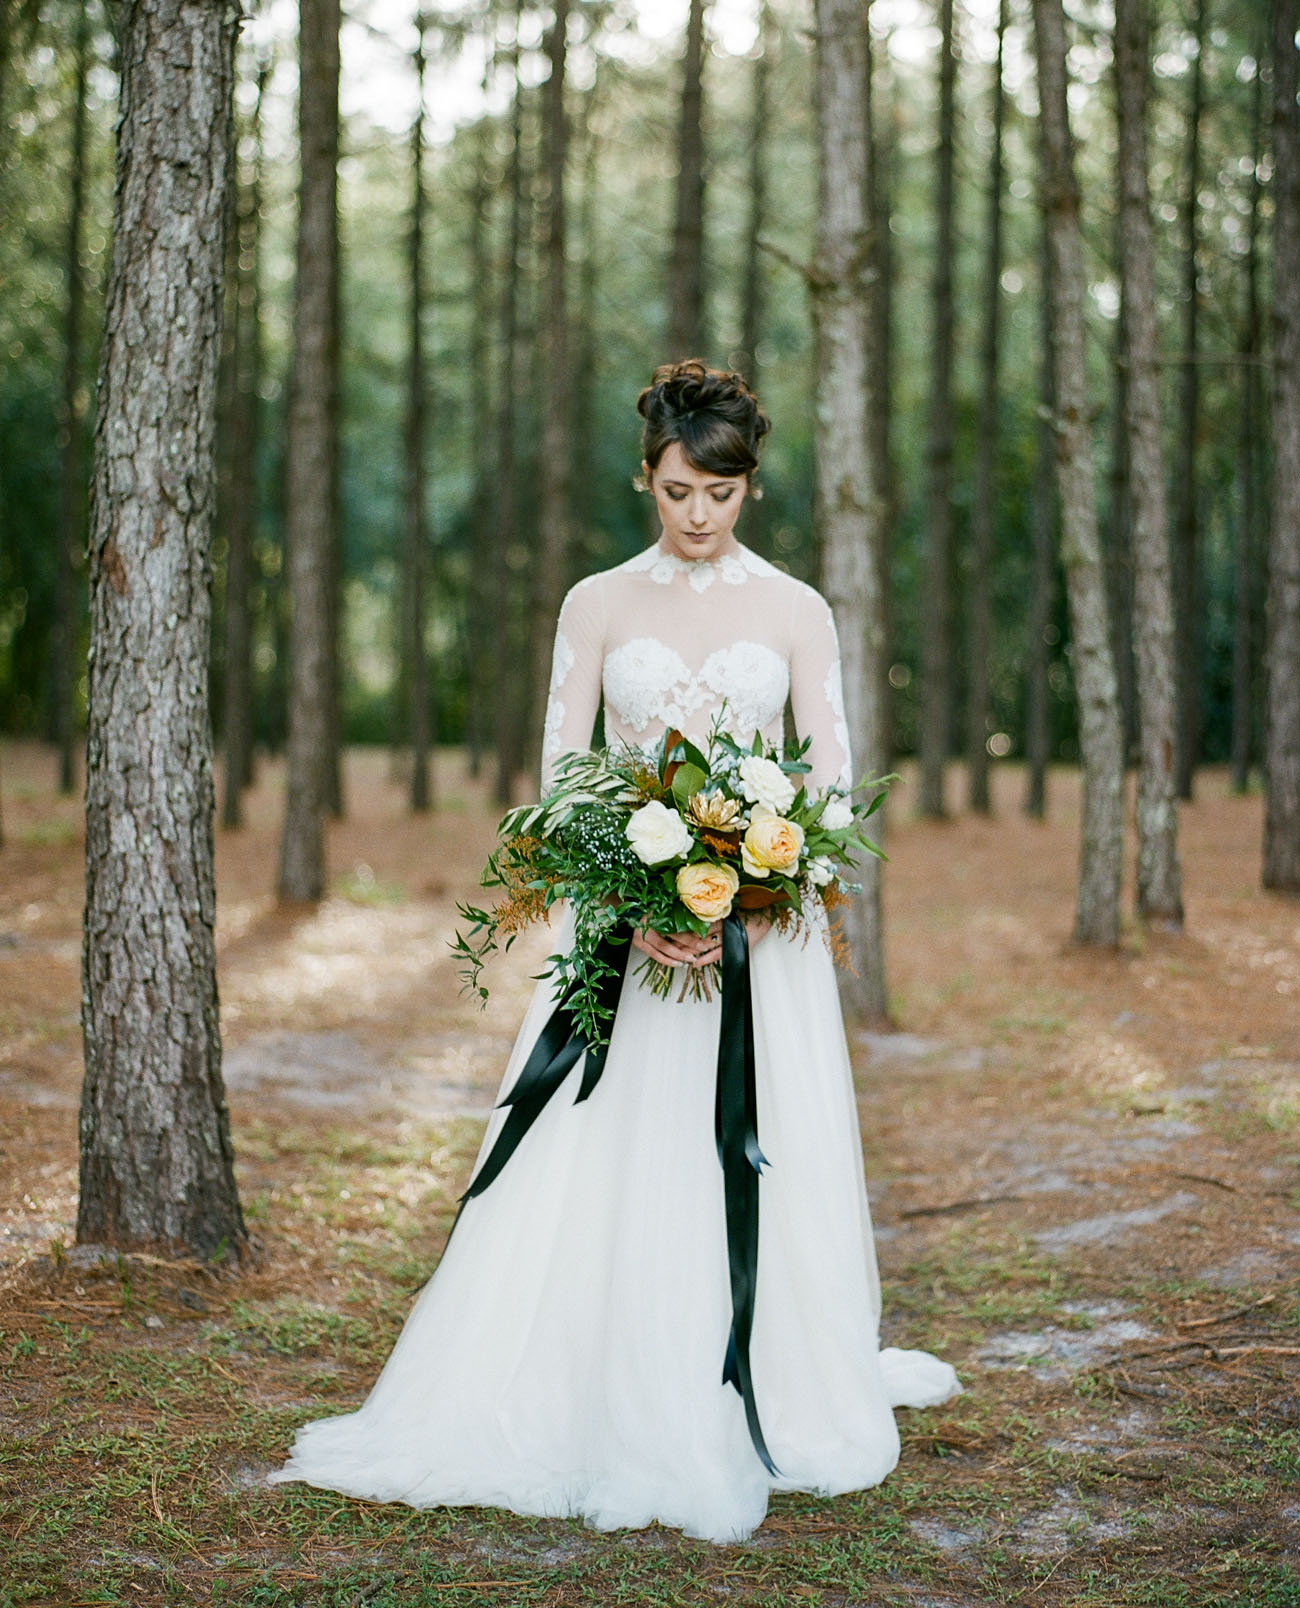 56b2a02706d3 Glam + Moody Holiday Wedding Inspiration in the Woods - Green ...